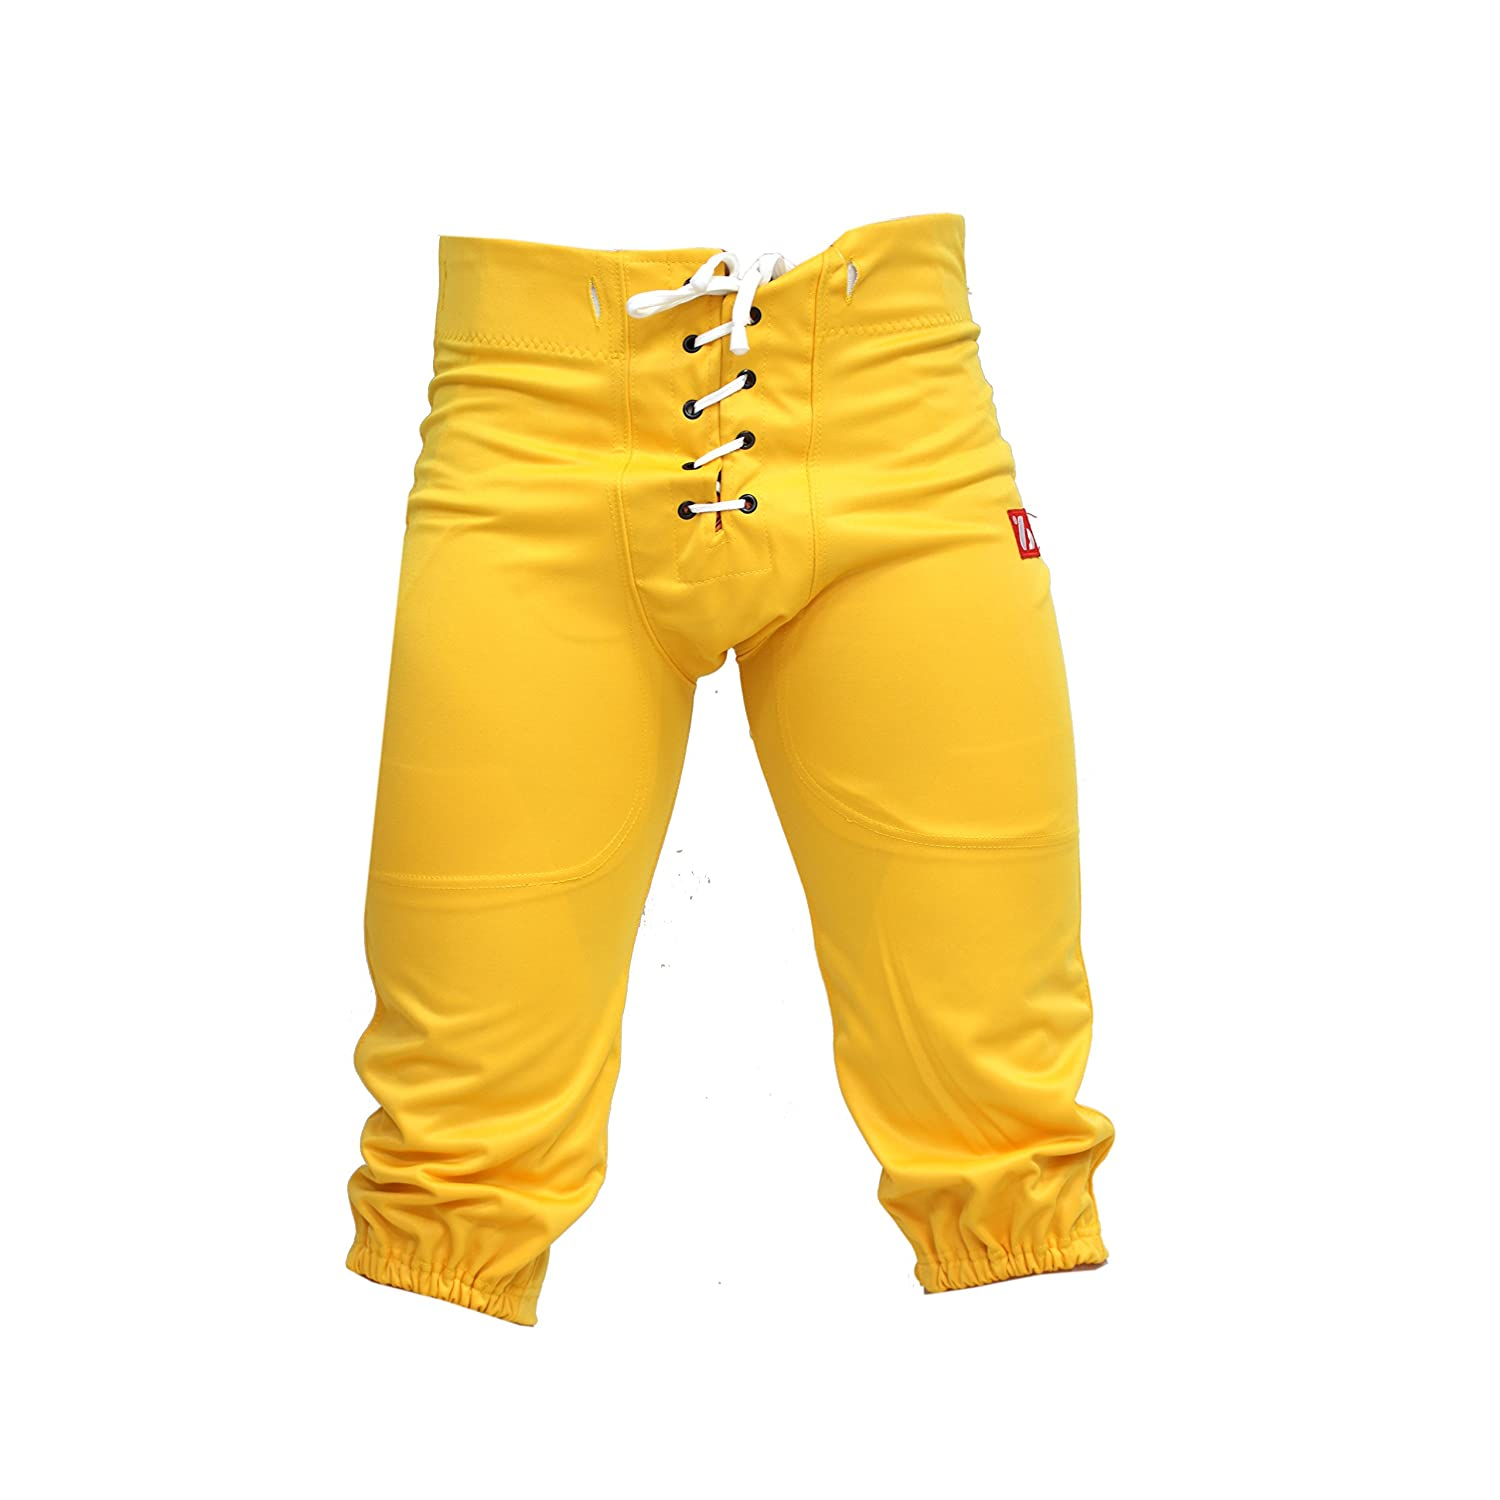 FP-2 football pants, match, yellow barnett